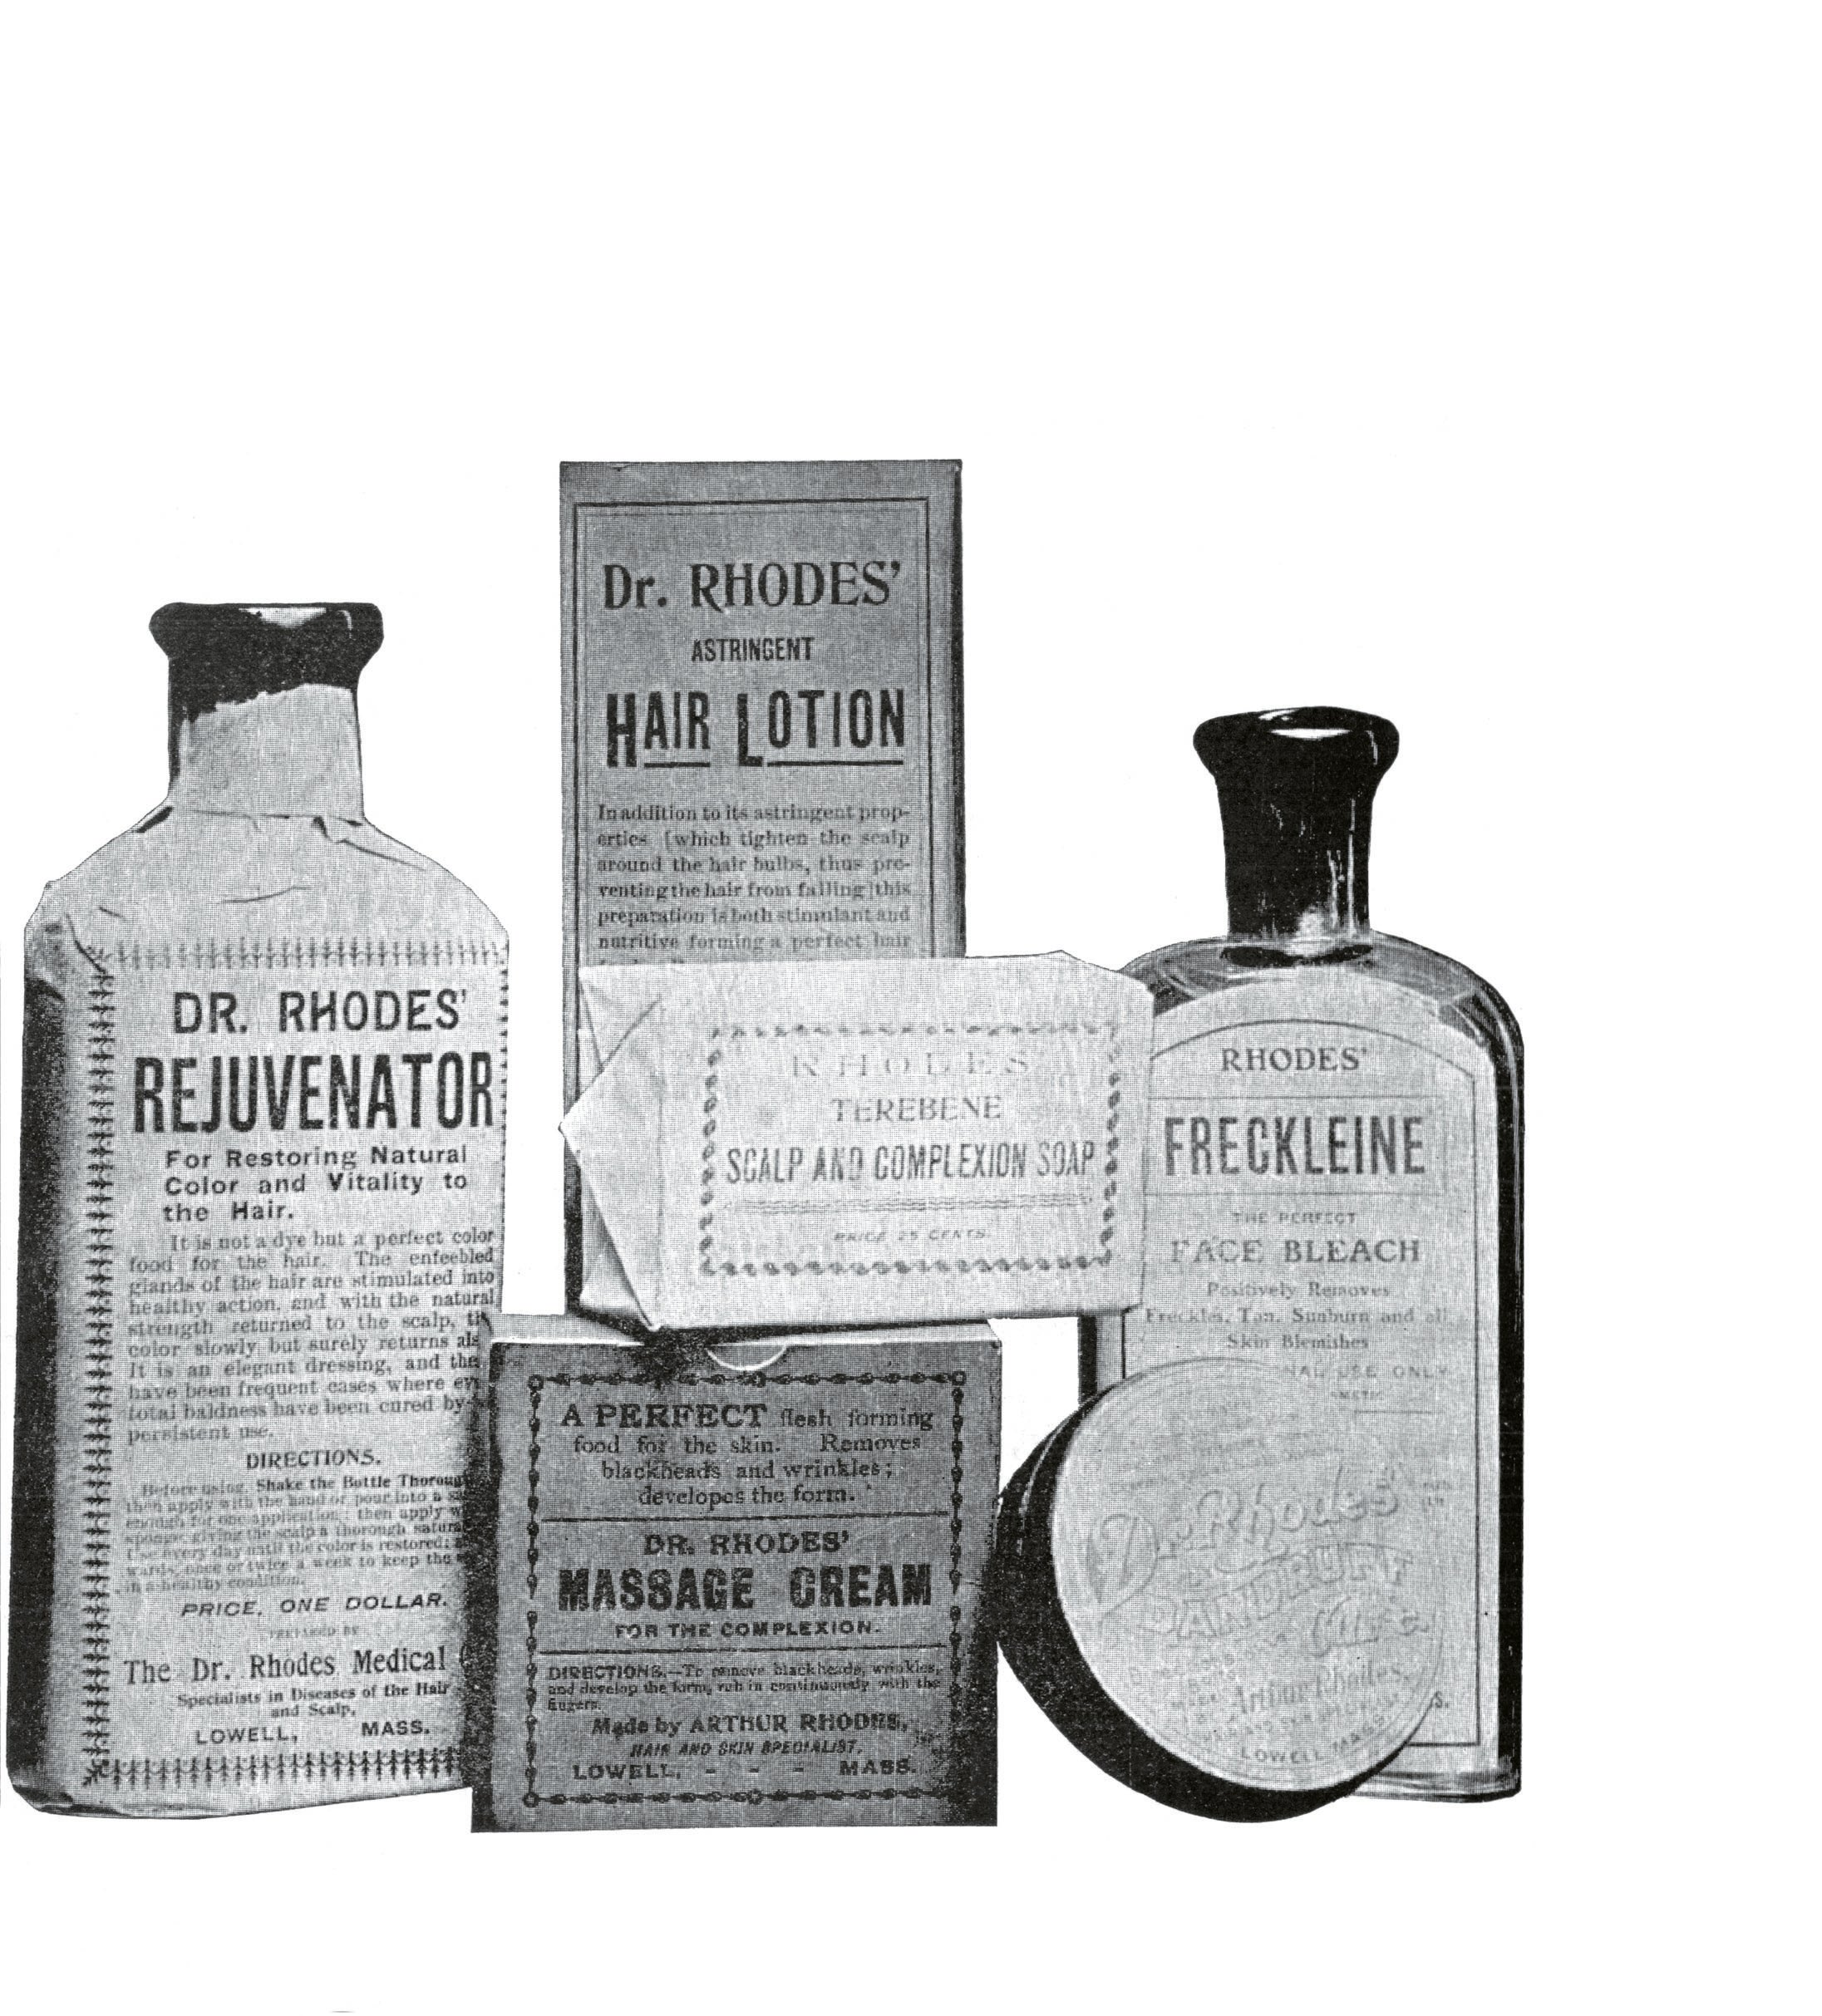 The Dr. Rhodes brand had an entire line of products for sale including Rejuvenator to restore color and vitality to hair, and Freckeline, a face bleach.